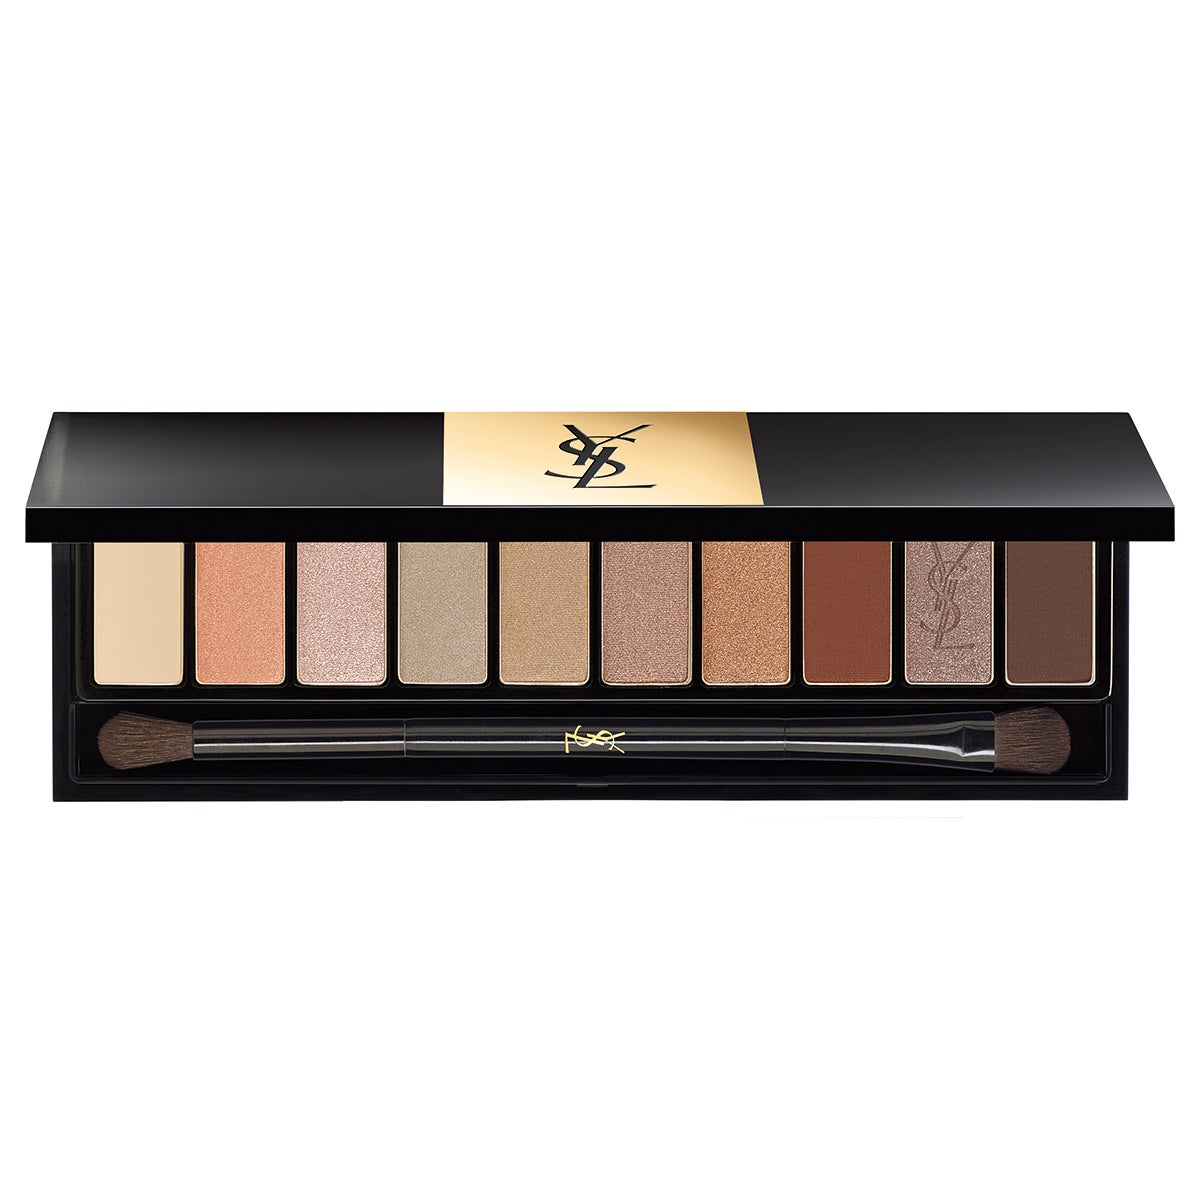 Full Couture Variation Eyeshadow Palette Yves Saint Laurent Ögonpaletter